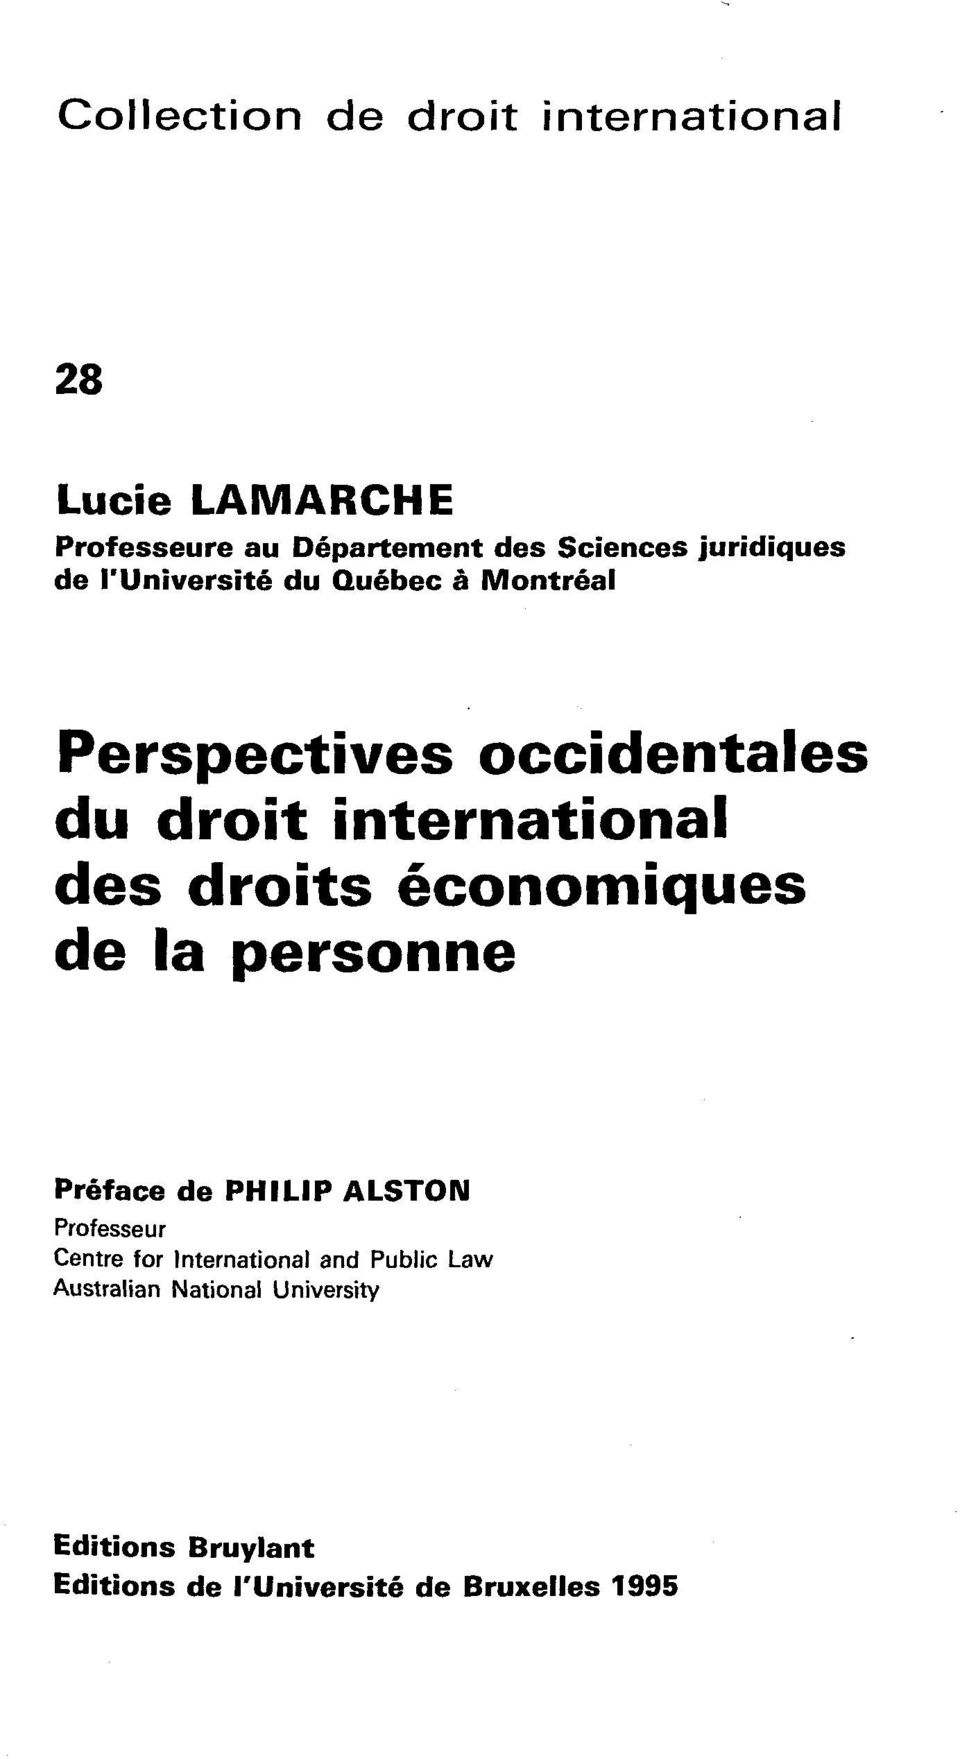 des droits economiques de la personne Preface de PHILIP ALSTON Professeur Centre for International